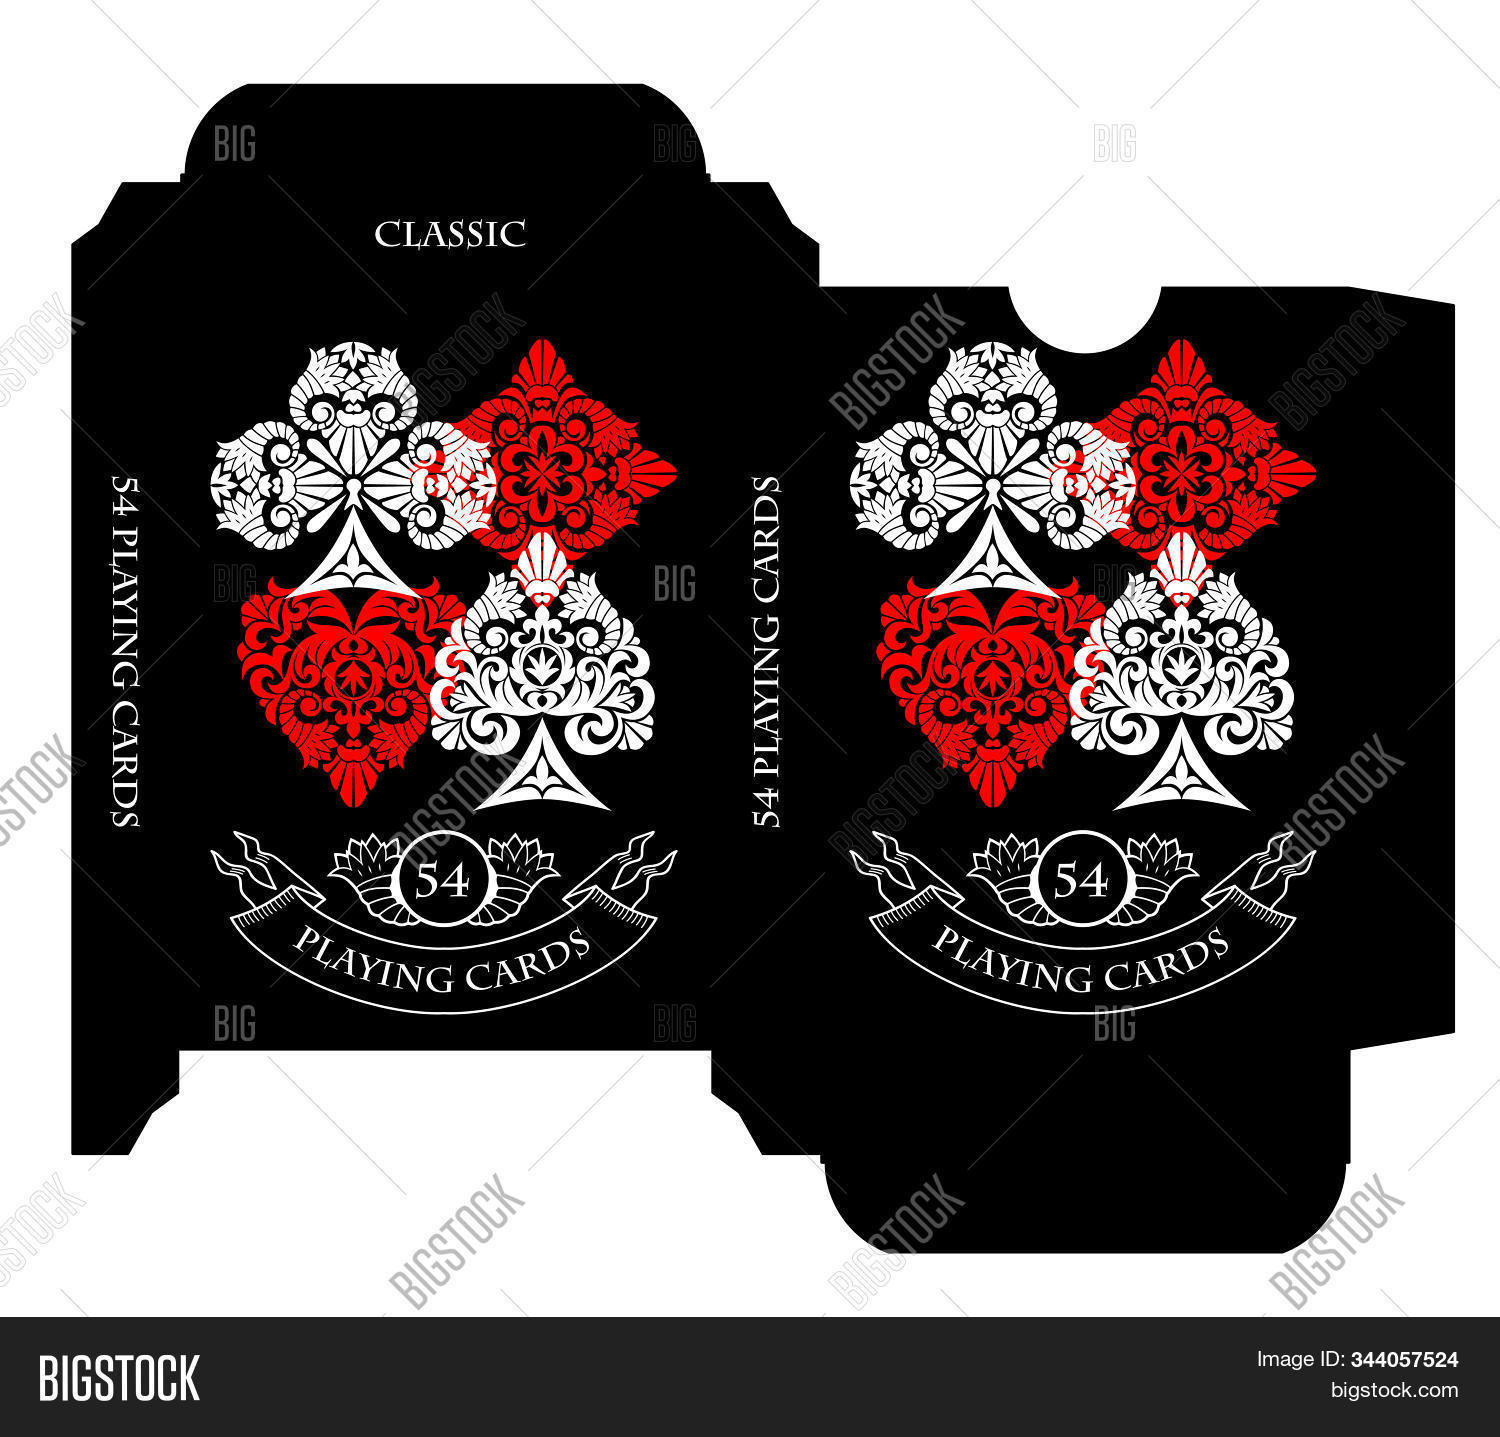 Playing Card Box Template from static2.bigstockphoto.com